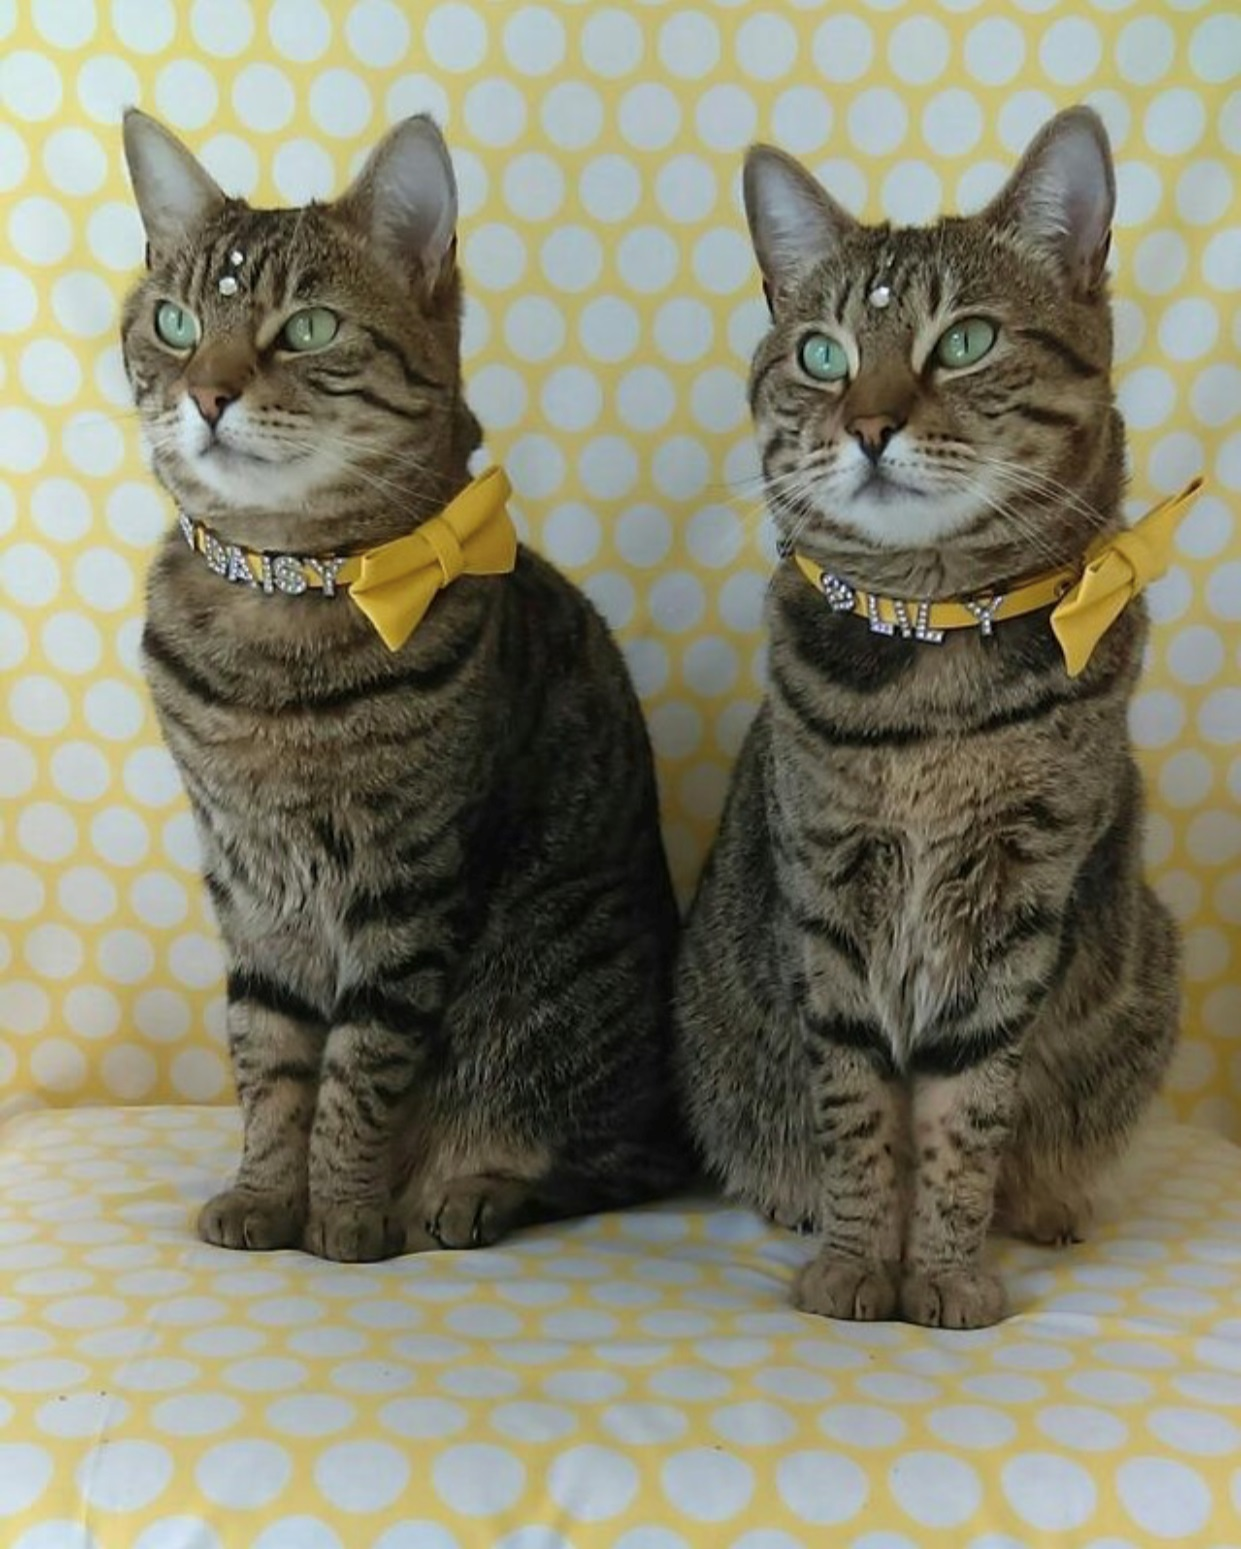 Daisy & Lily - These collars are superb, they fit Daisy and Lily beautifully and the range of colours means there's something to suit every cat! I can't wait until you bring out more in the cat range :-)